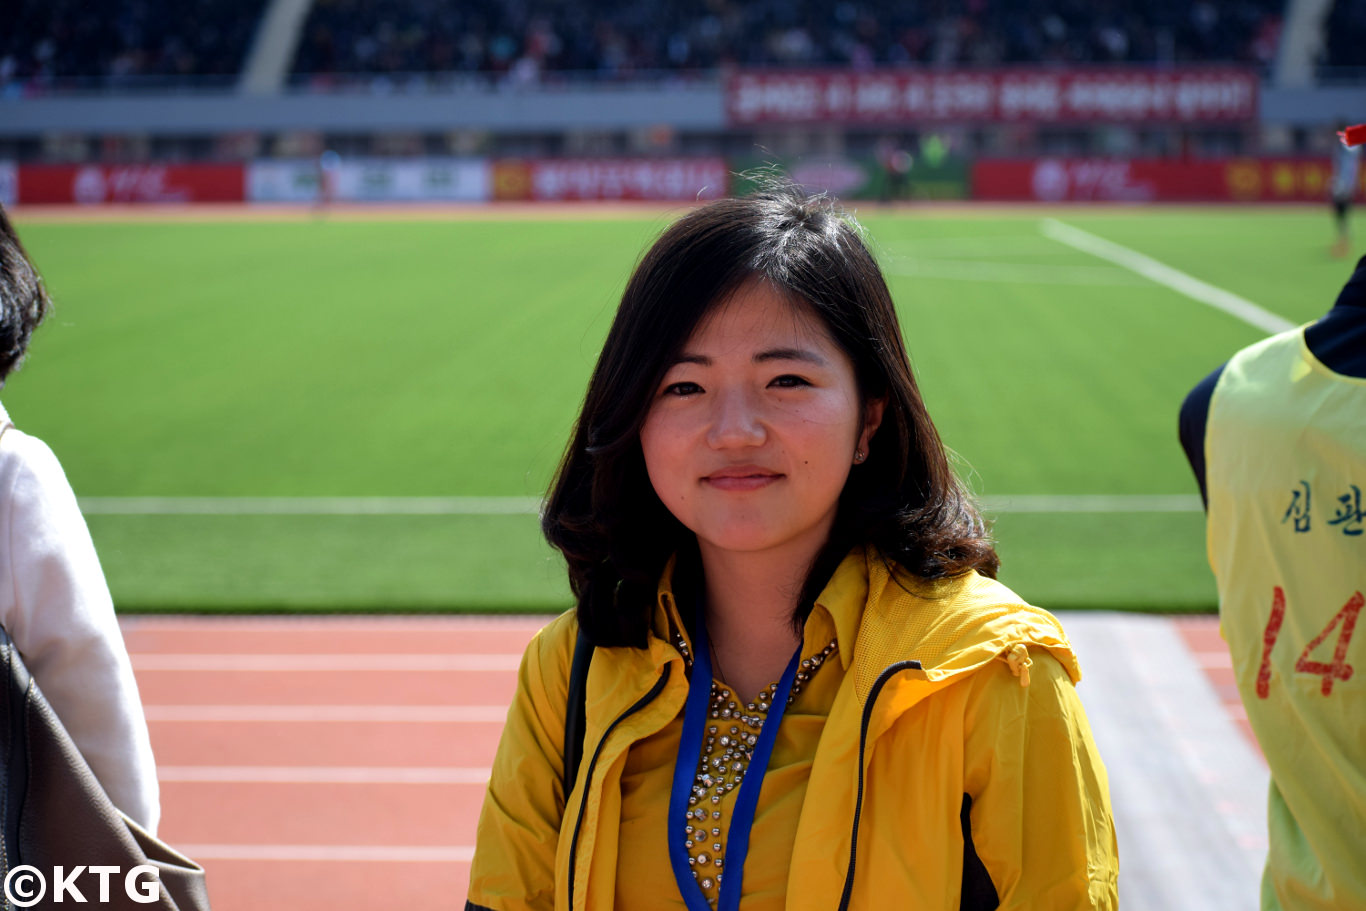 One of the best tours guides in North Korea, Kim Sung Mi, was in charge of coordinating the project of rebuilding a courtyard at the Kaesong Folk Hotel. We took the picture at Kim Il Sung stadium during the Pyongyang Marathon